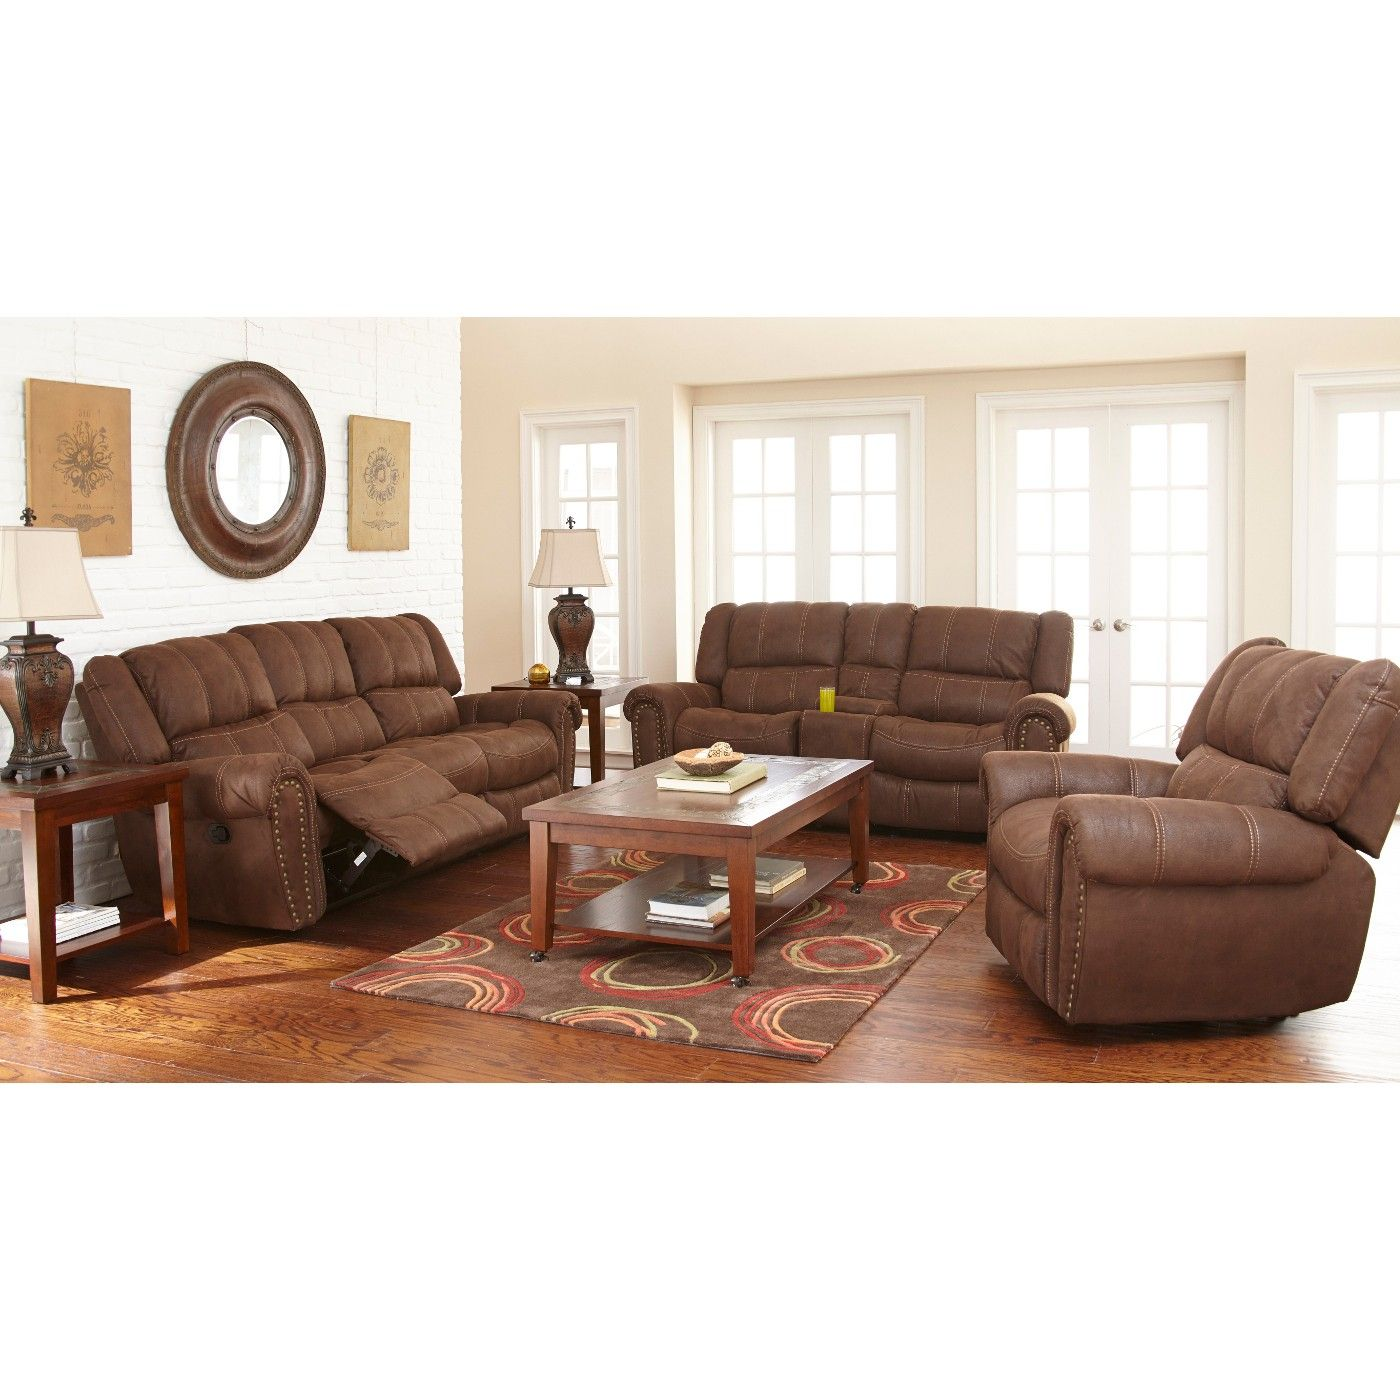 Lazy Boy Sofa Visit Conn us HomePlus to shop our Living Room Furniture including our Carrera Living Room Reclining Sofa u Loveseat Apply for our YES MONEY credit and